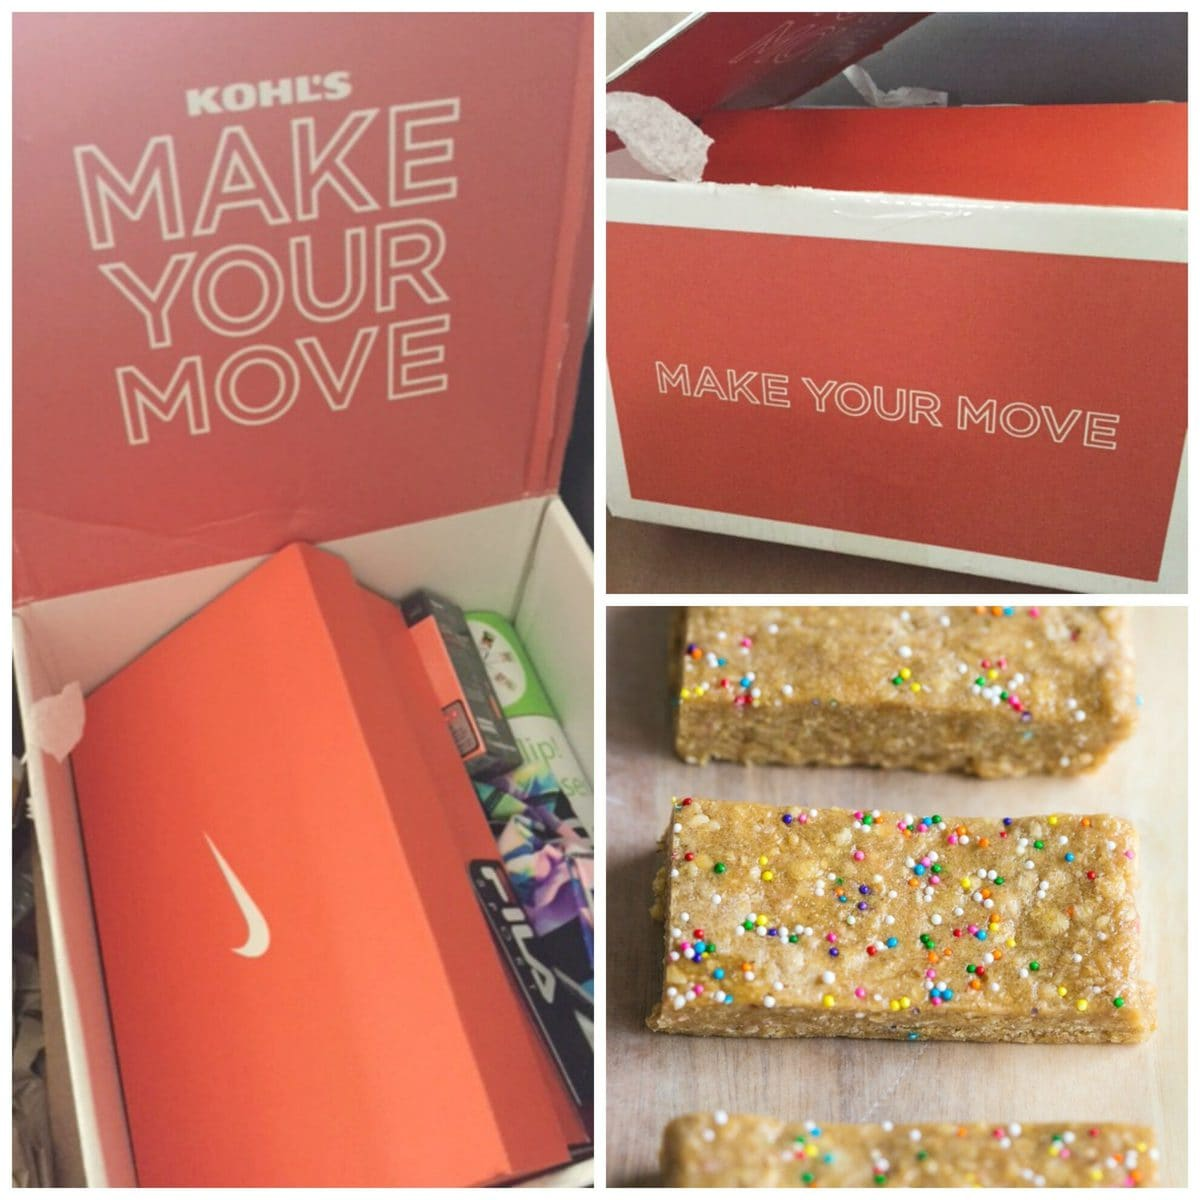 make-your-move-kohls